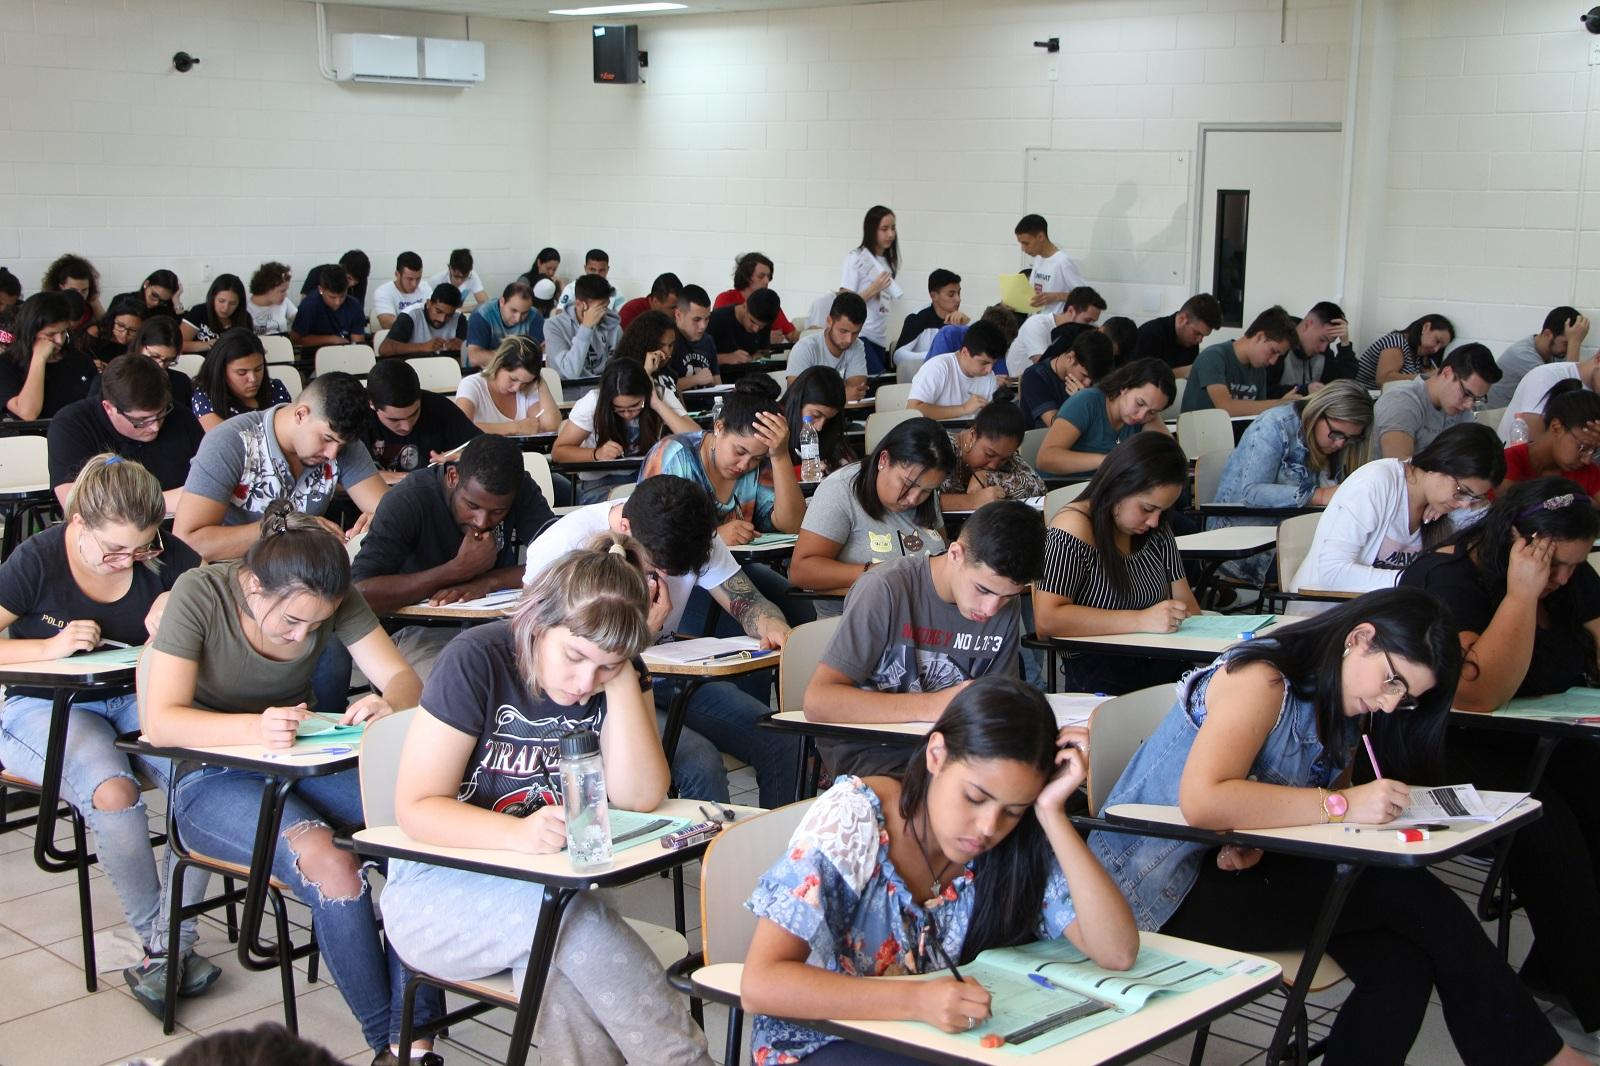 Sucesso do Vestibular 2019 do Centro Universitário UNIFAAT comprova excelência educacional